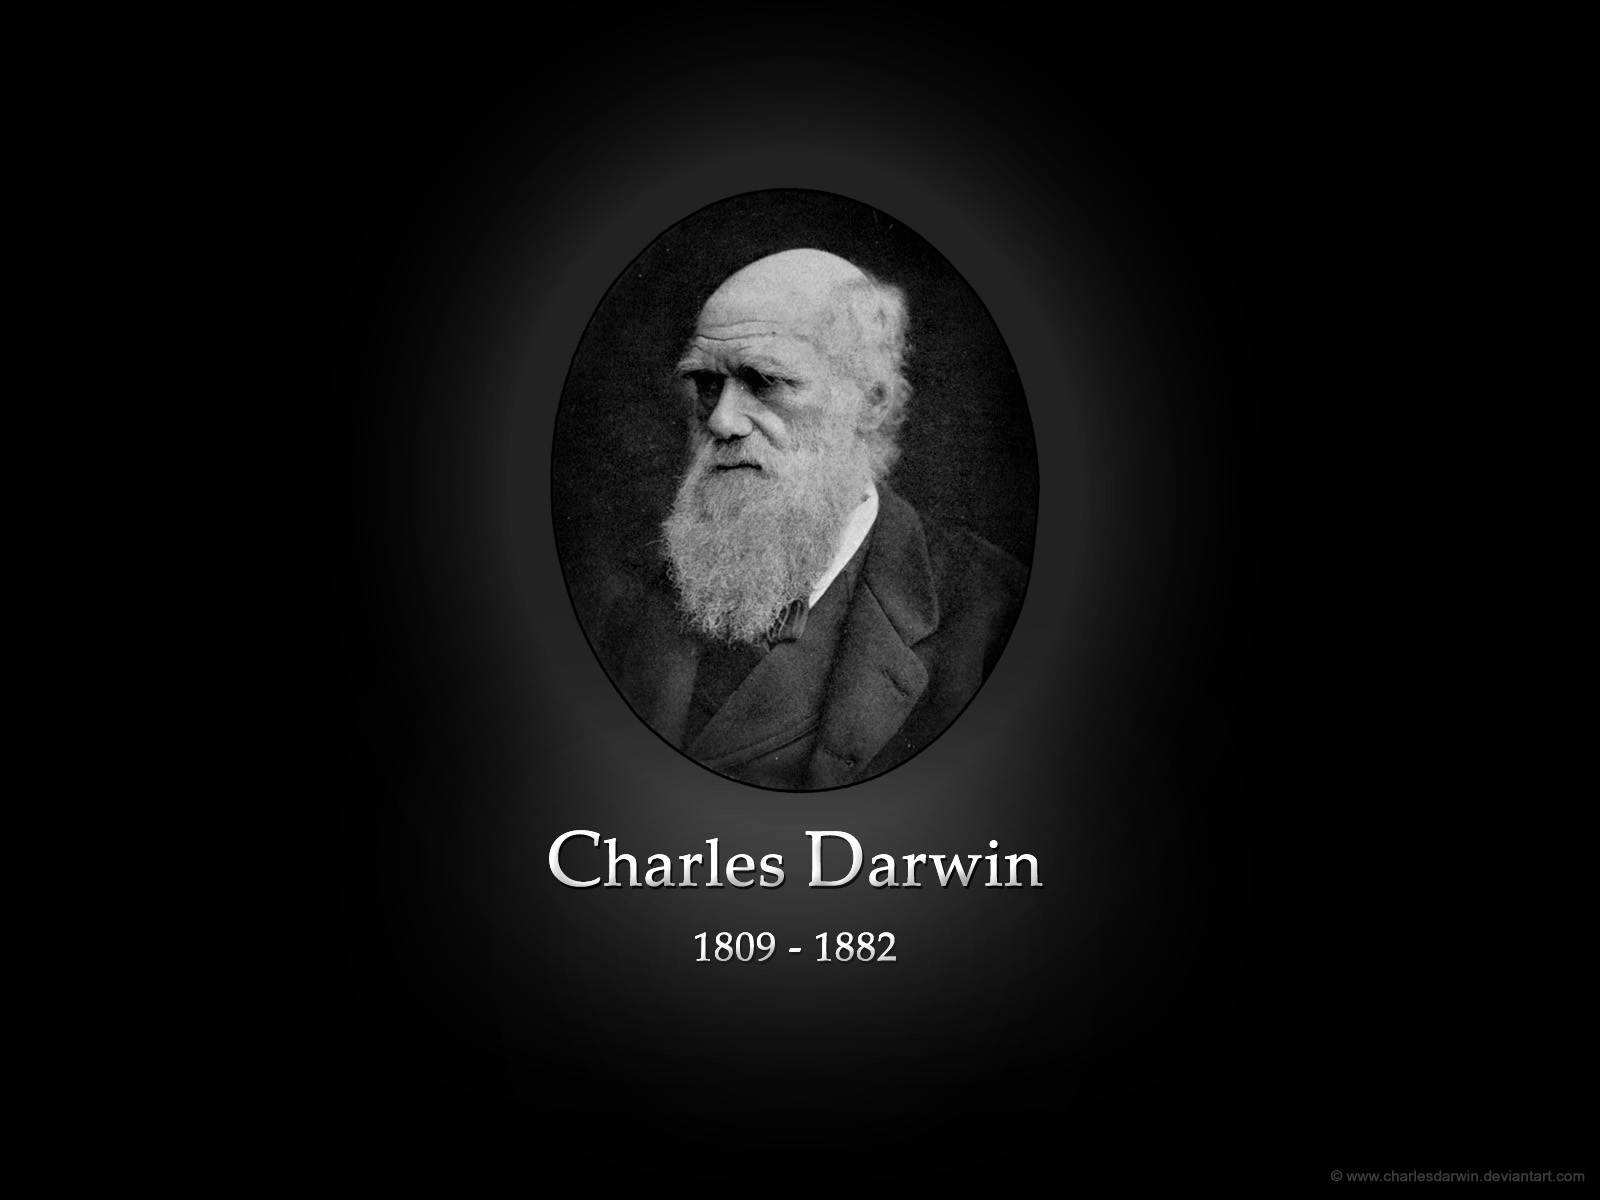 the confirmation of charles darwins discoveries in the human dna Scientists have used dna from charles darwin's great-great  who struck upon  the theory that all humans are descended from one common ancestor  desire  for knowledge and thirst for discovery was in his genetic makeup.